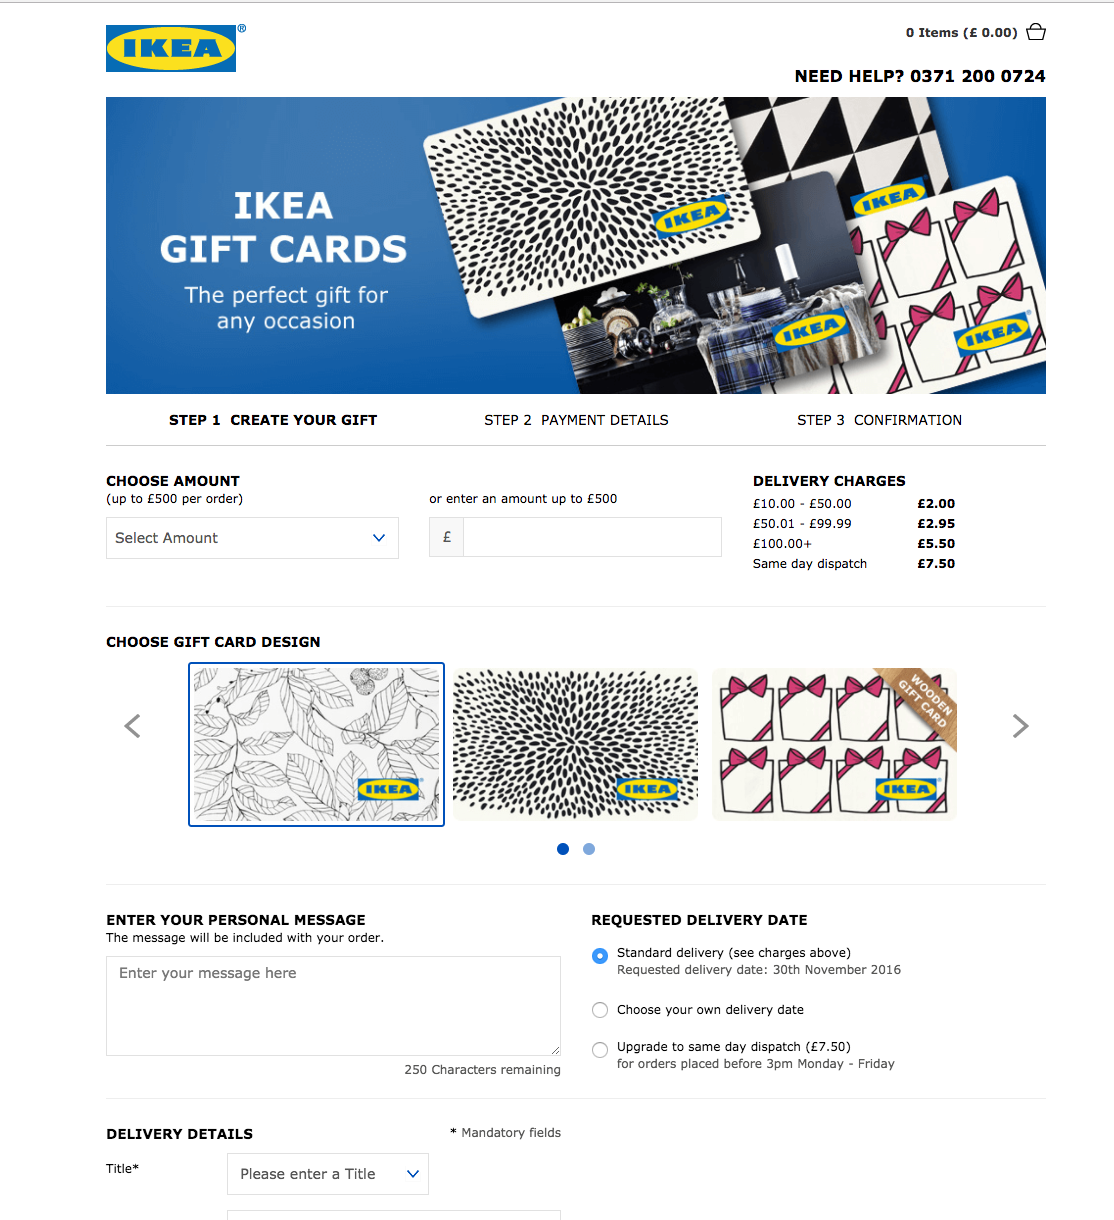 Ikea Gift Card 2016 Gift Cards E Vouchers Pinterest